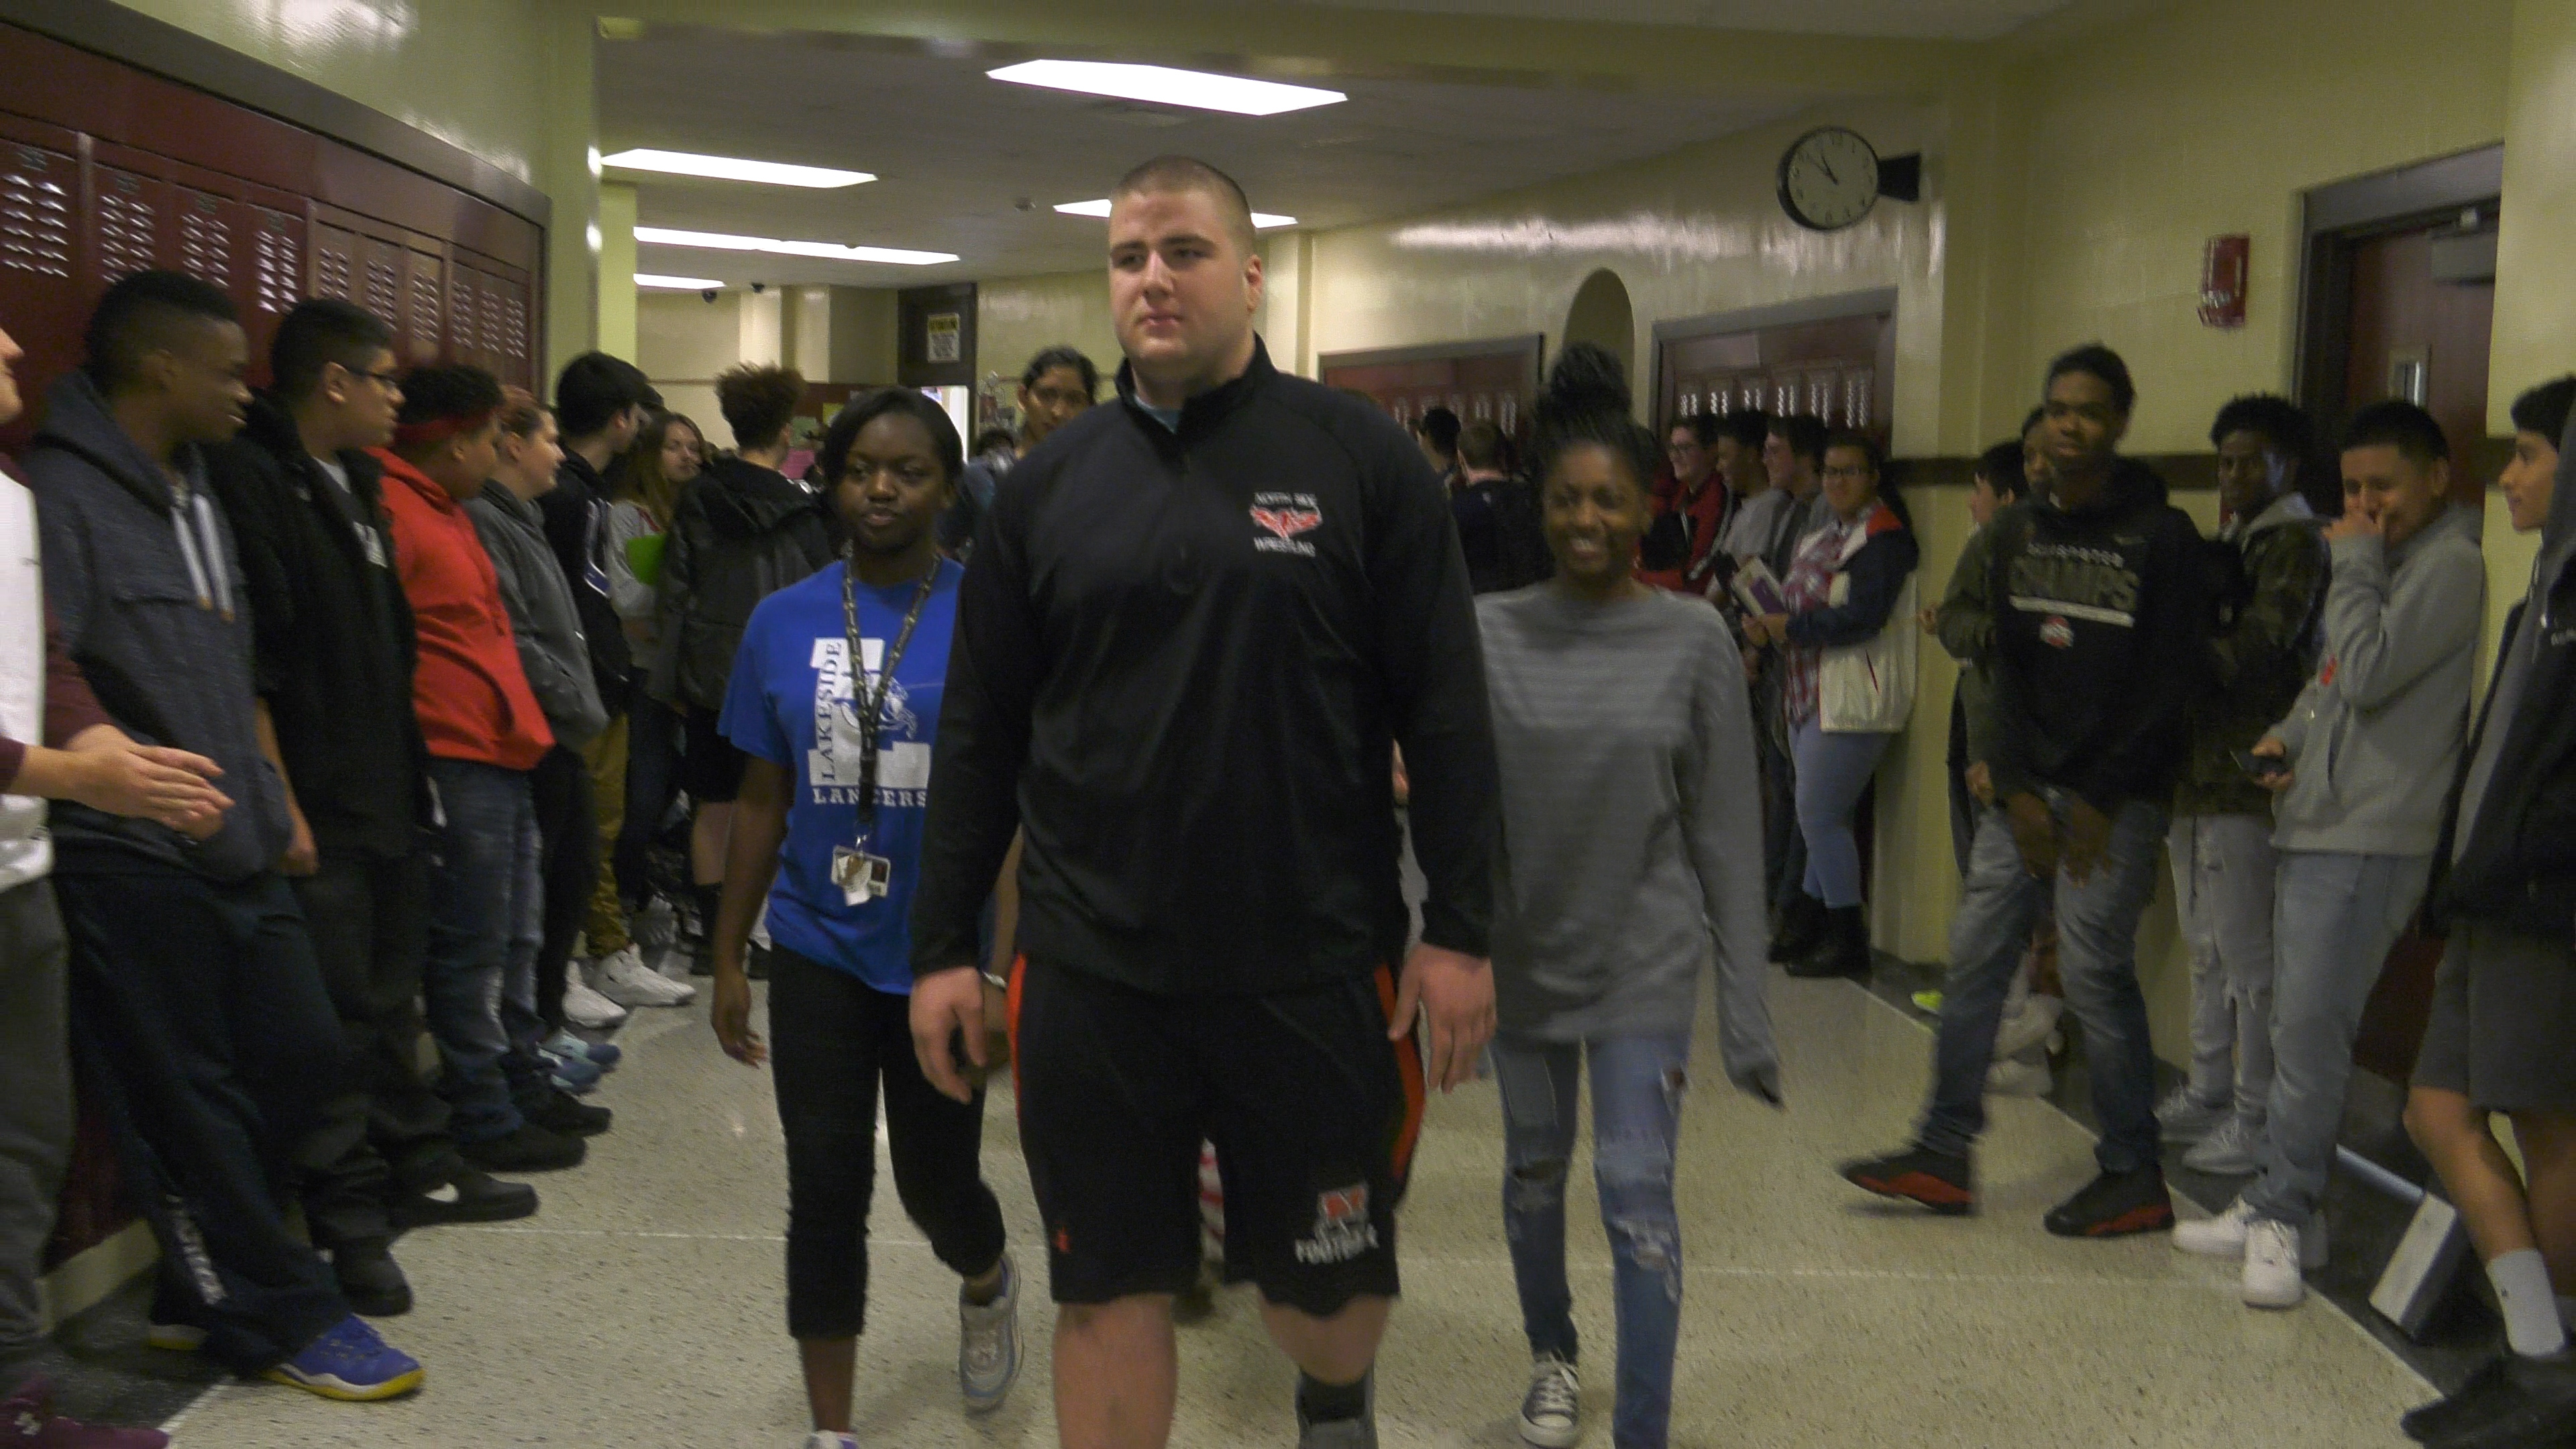 Ault gets big North Side send off ahead of state wrestling finals